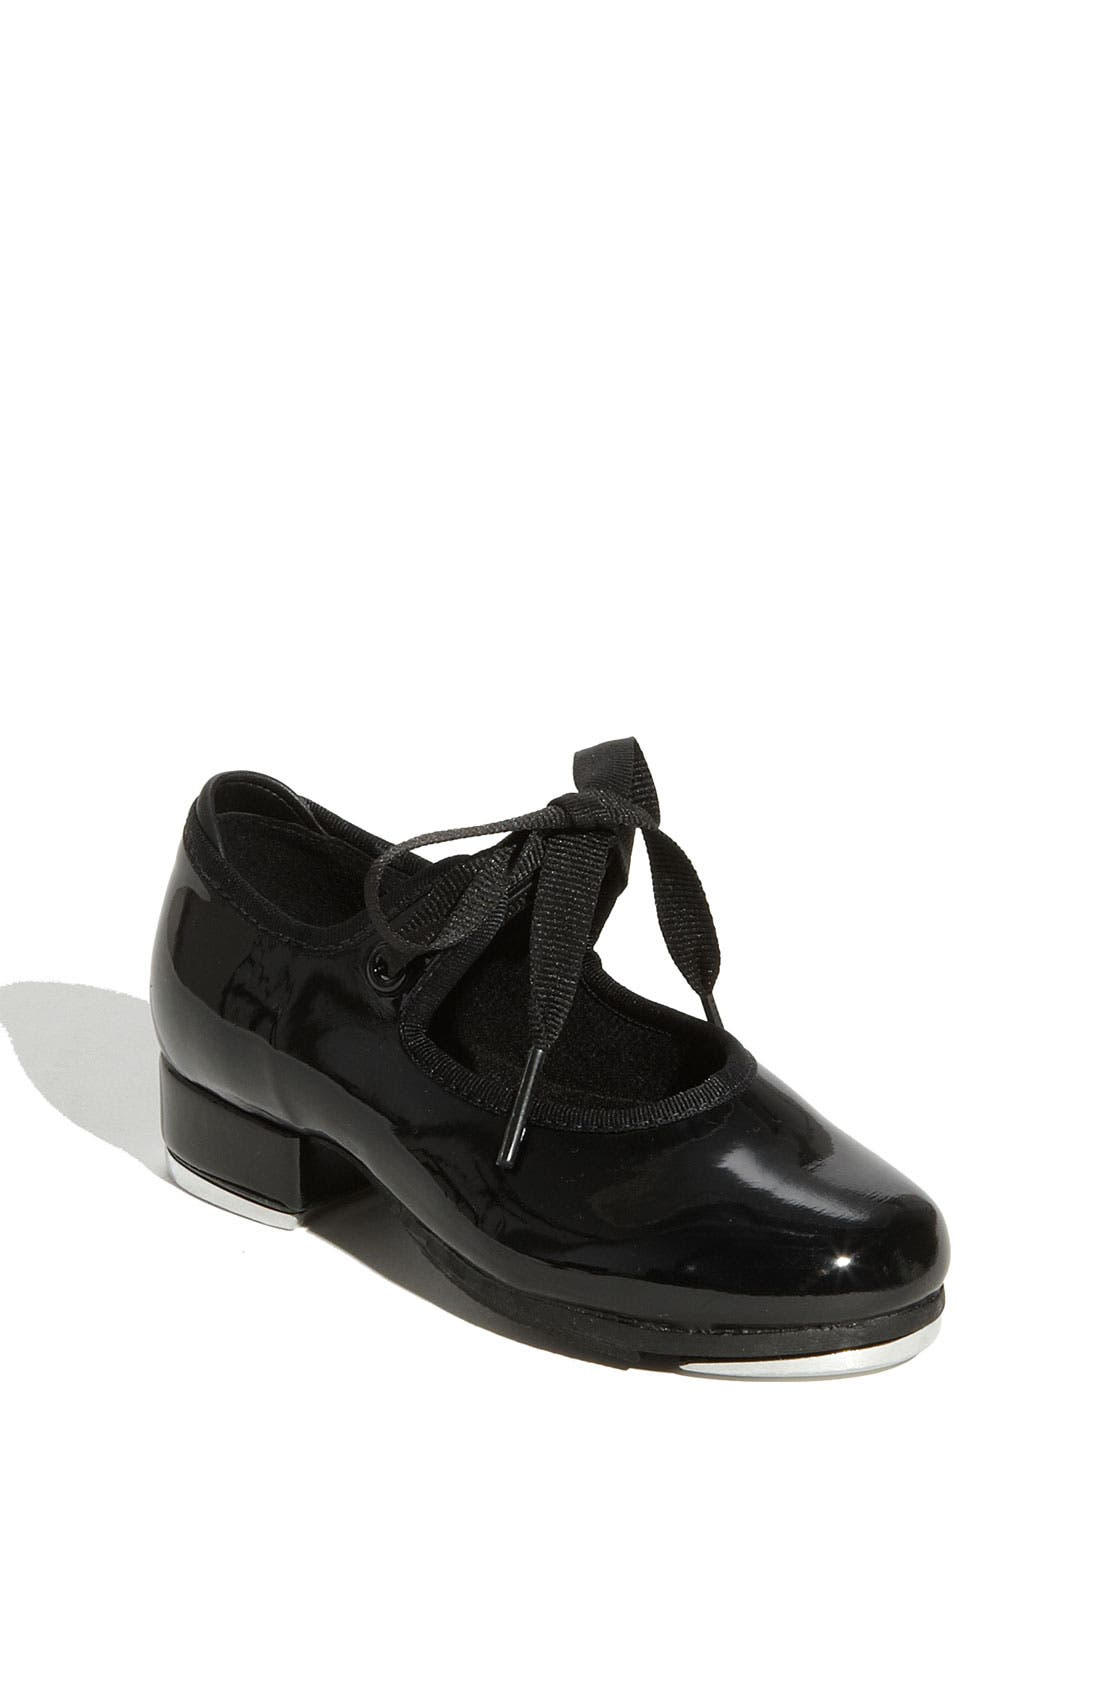 Alternate Image 1 Selected - Bloch 'Annie' Tap Shoe (Walker, Toddler & Little Kid)